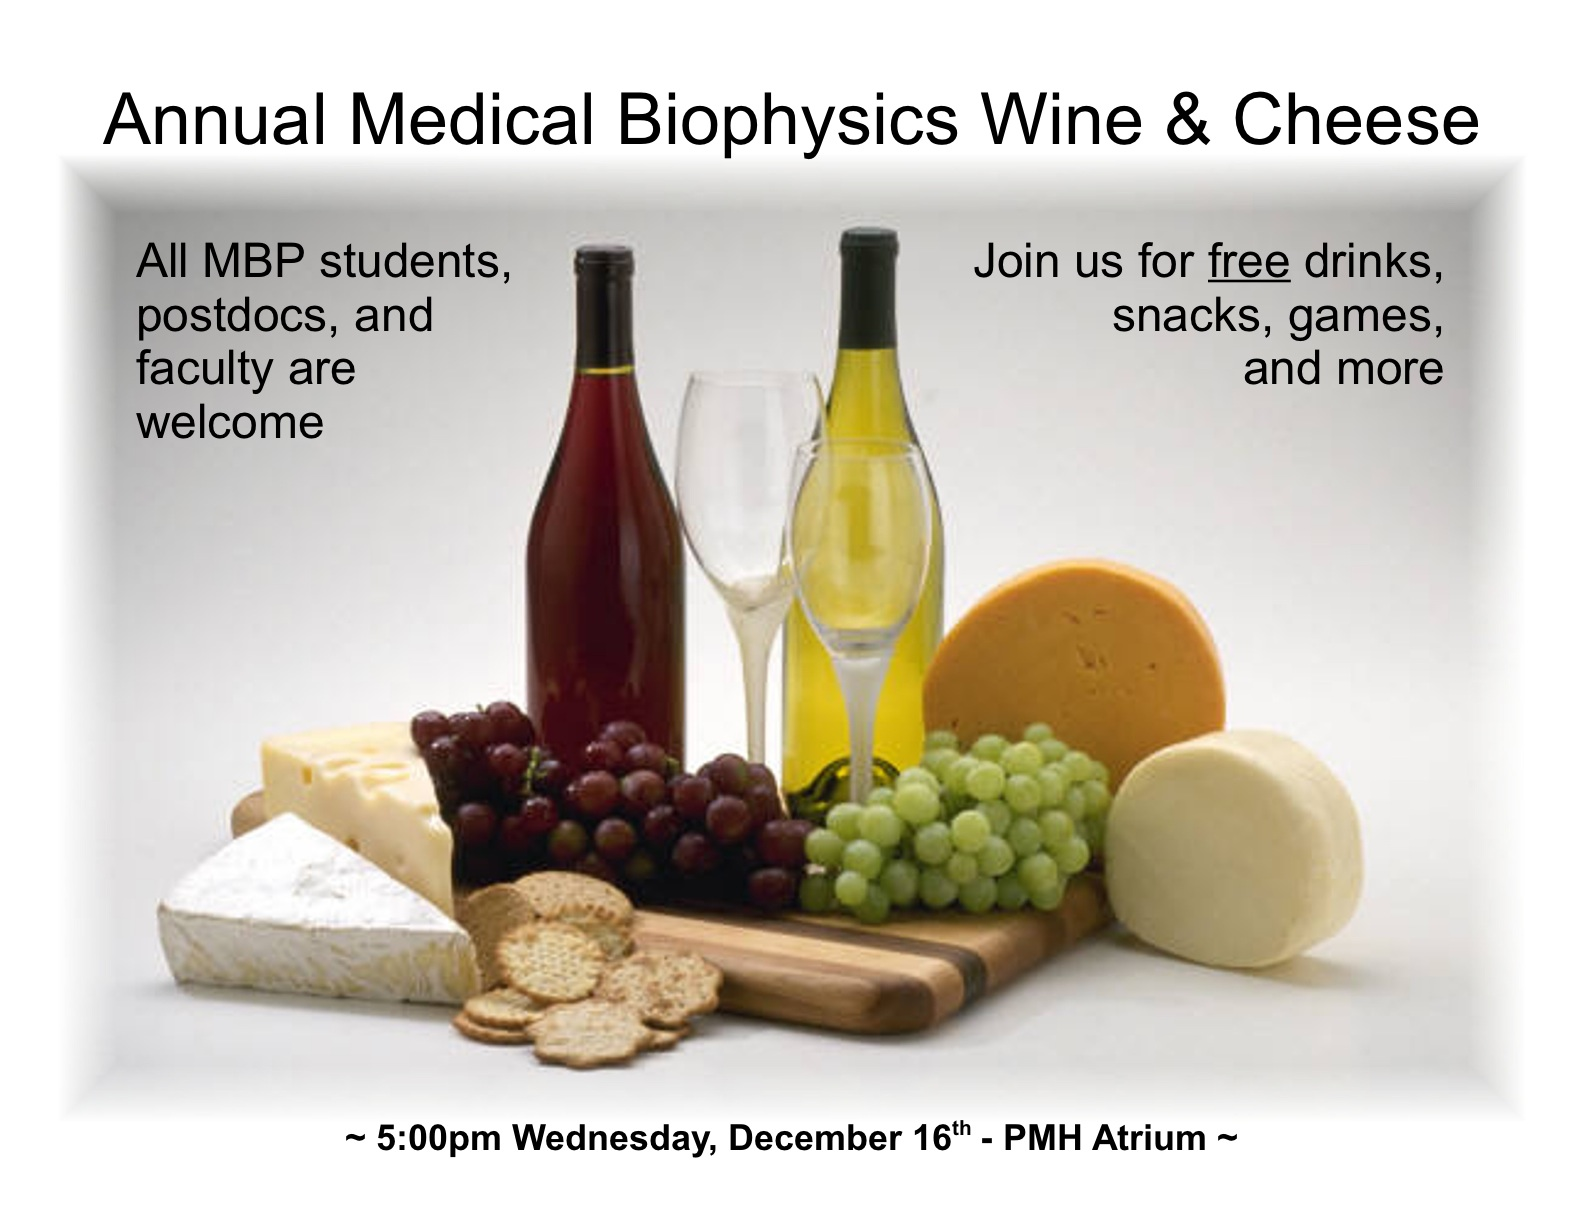 wine_and_cheese_poster_michael2.jpg